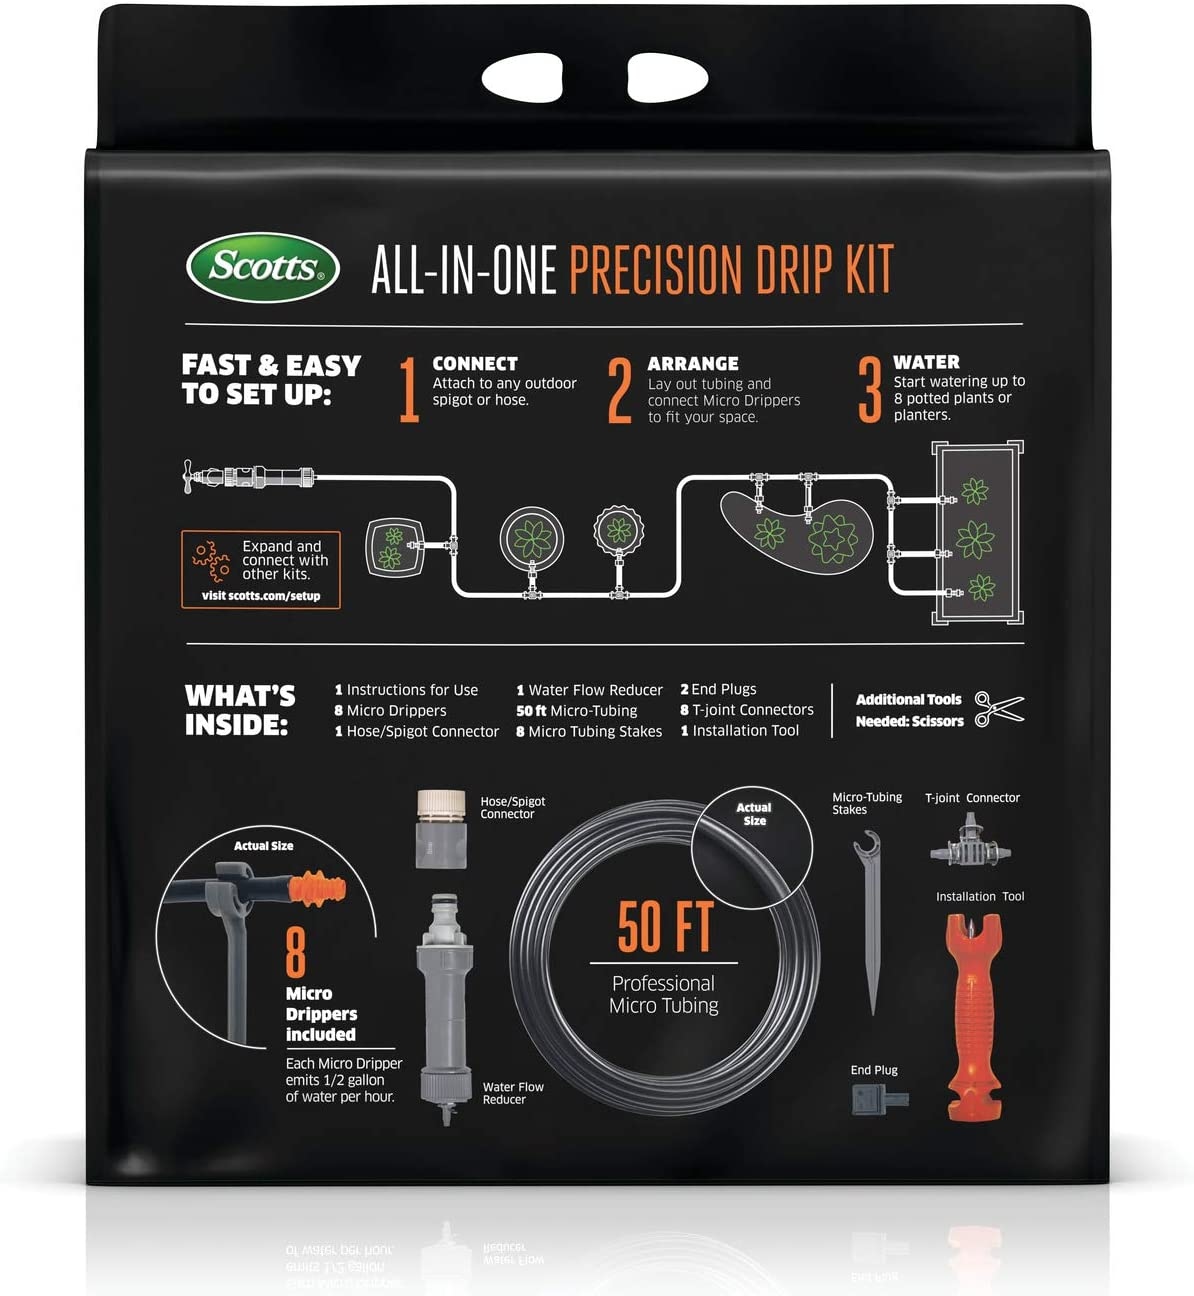 Scotts All-in-One Precision Drip Kit – Includes 8 Micro Drippers and 50 ft. of Professional Micro Tubing, Precision Watering for Pots and Planters, Covers up to 8 Pots or Planters